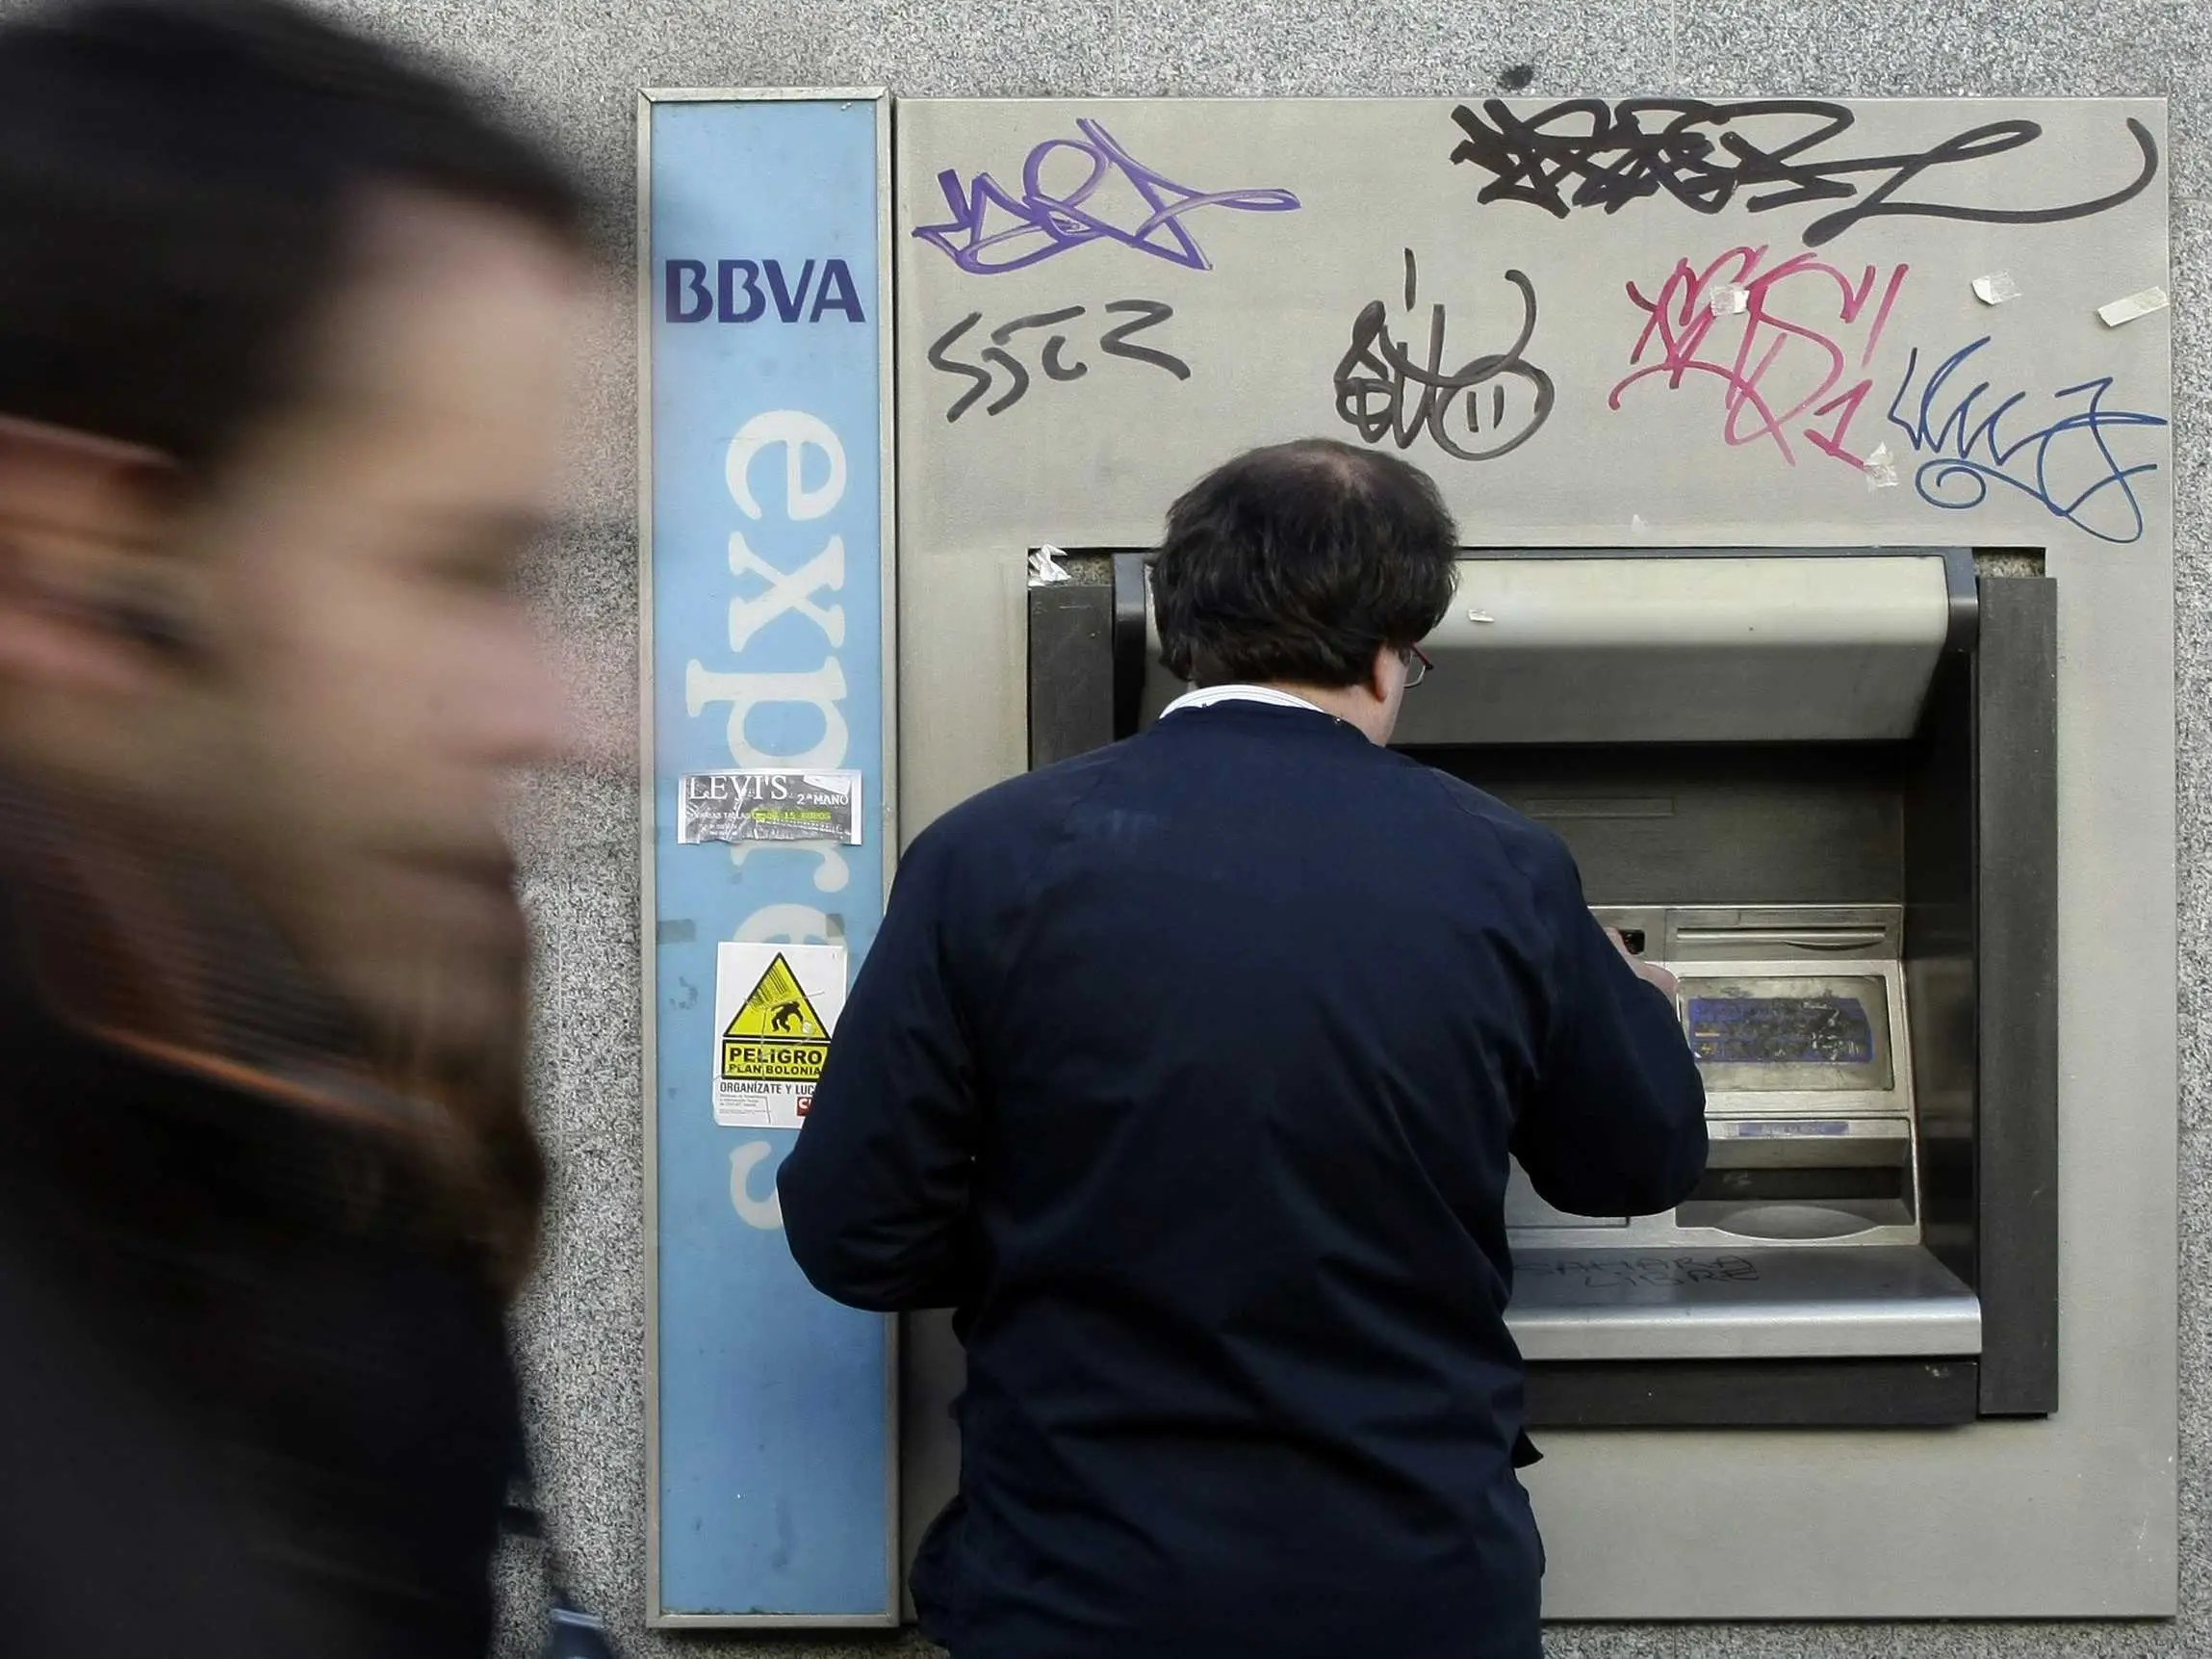 bbva spanish bank atm